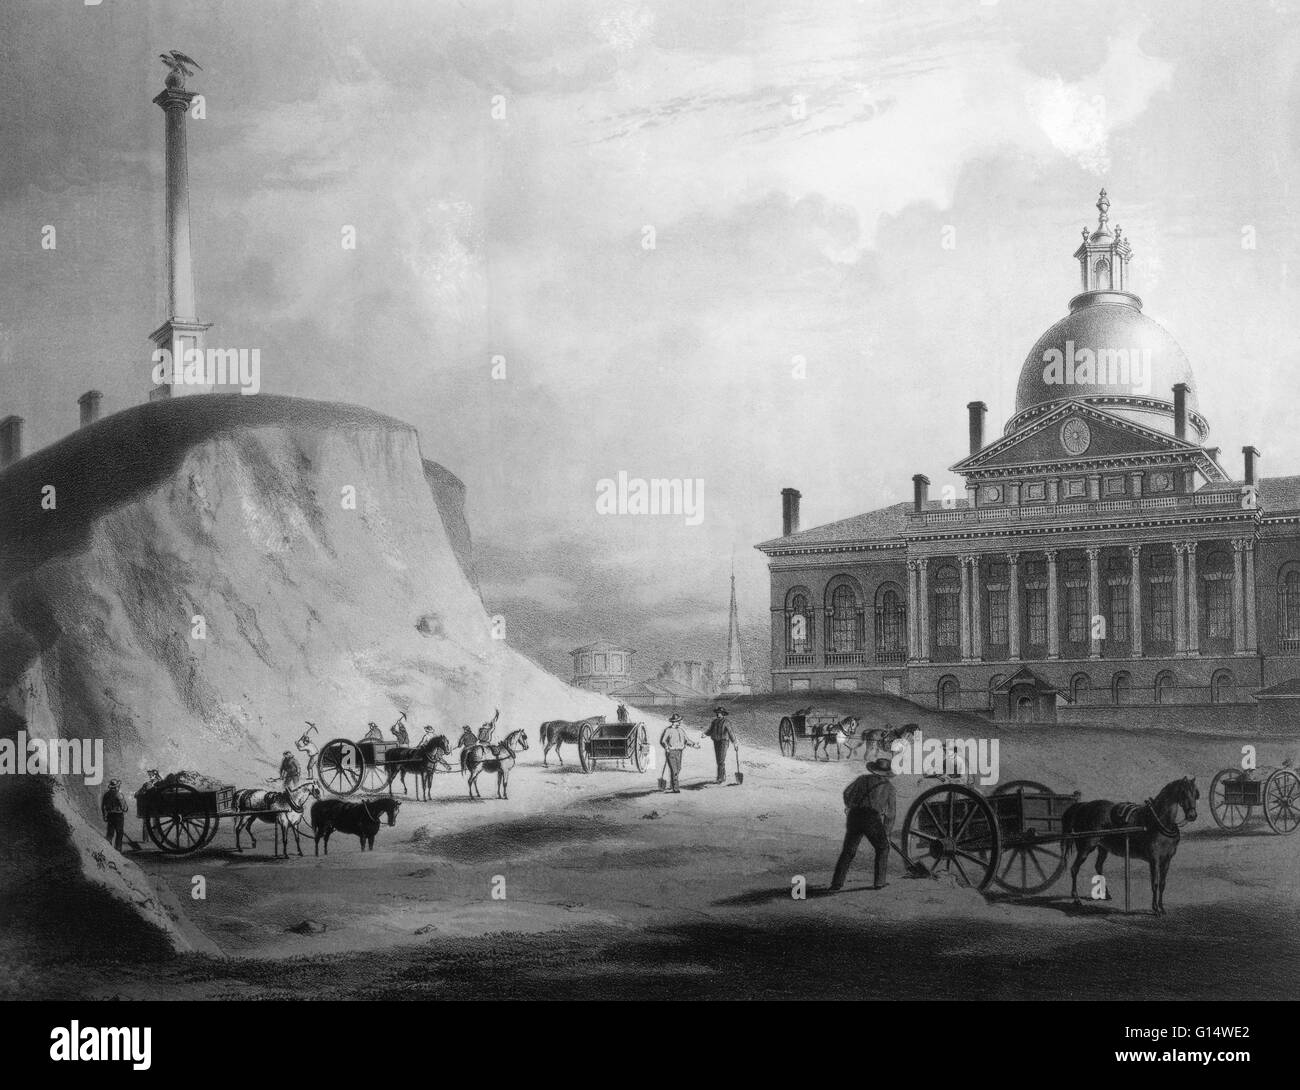 Workers leveling Beacon Hill, Boston, in 1811; a view from the north towards the Massachusetts State House. Lithograph - Stock Image